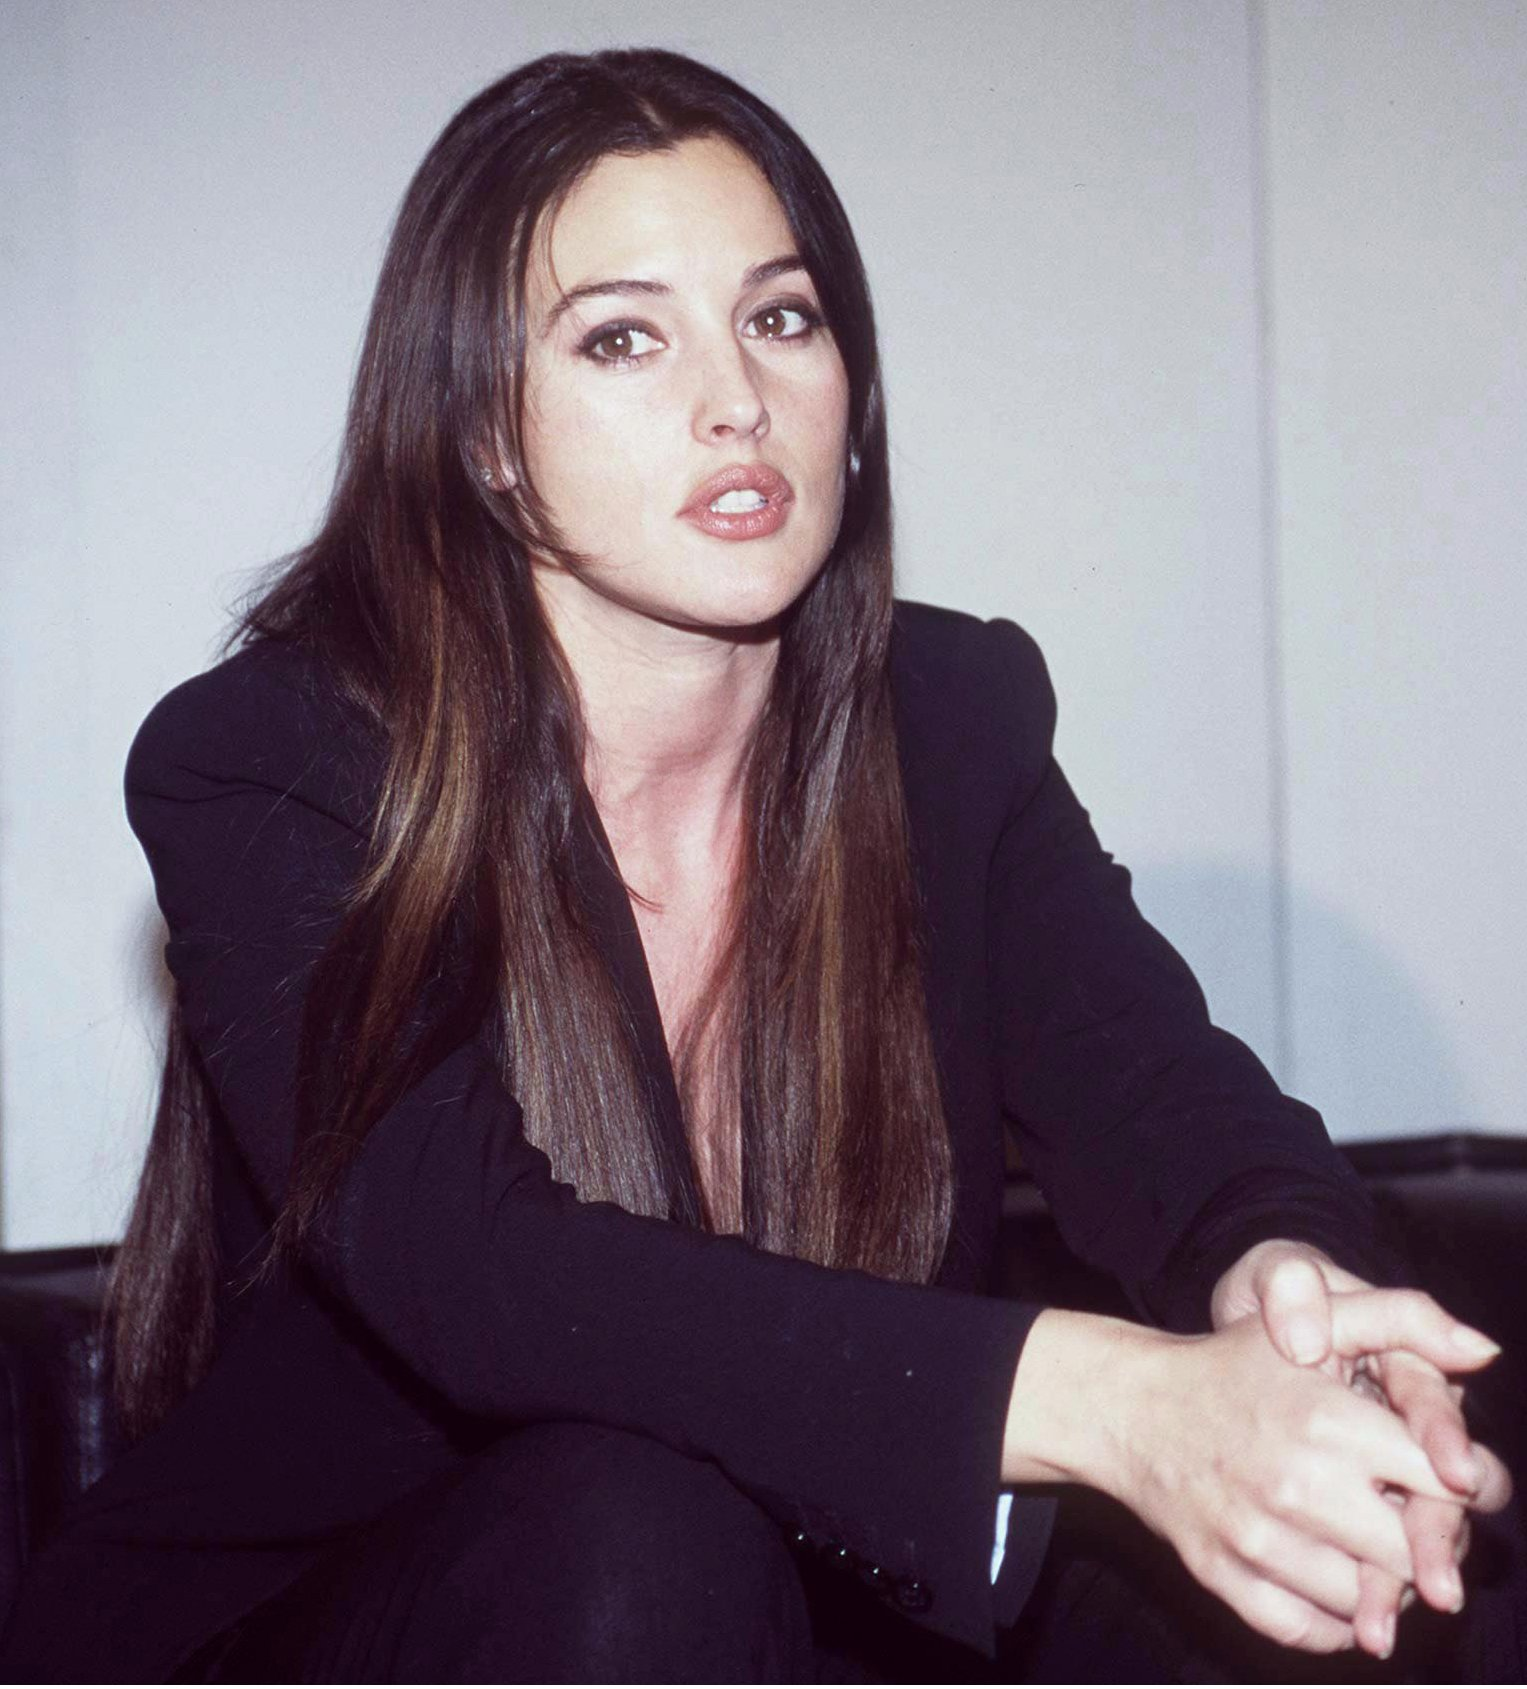 05-06-1999 MILAN IN THE PHOTO: MONICA BELLUCCI, Image: 19258670, License: Rights-managed, Restrictions: , Model Release: no, Credit line: Profimedia, LaPresse